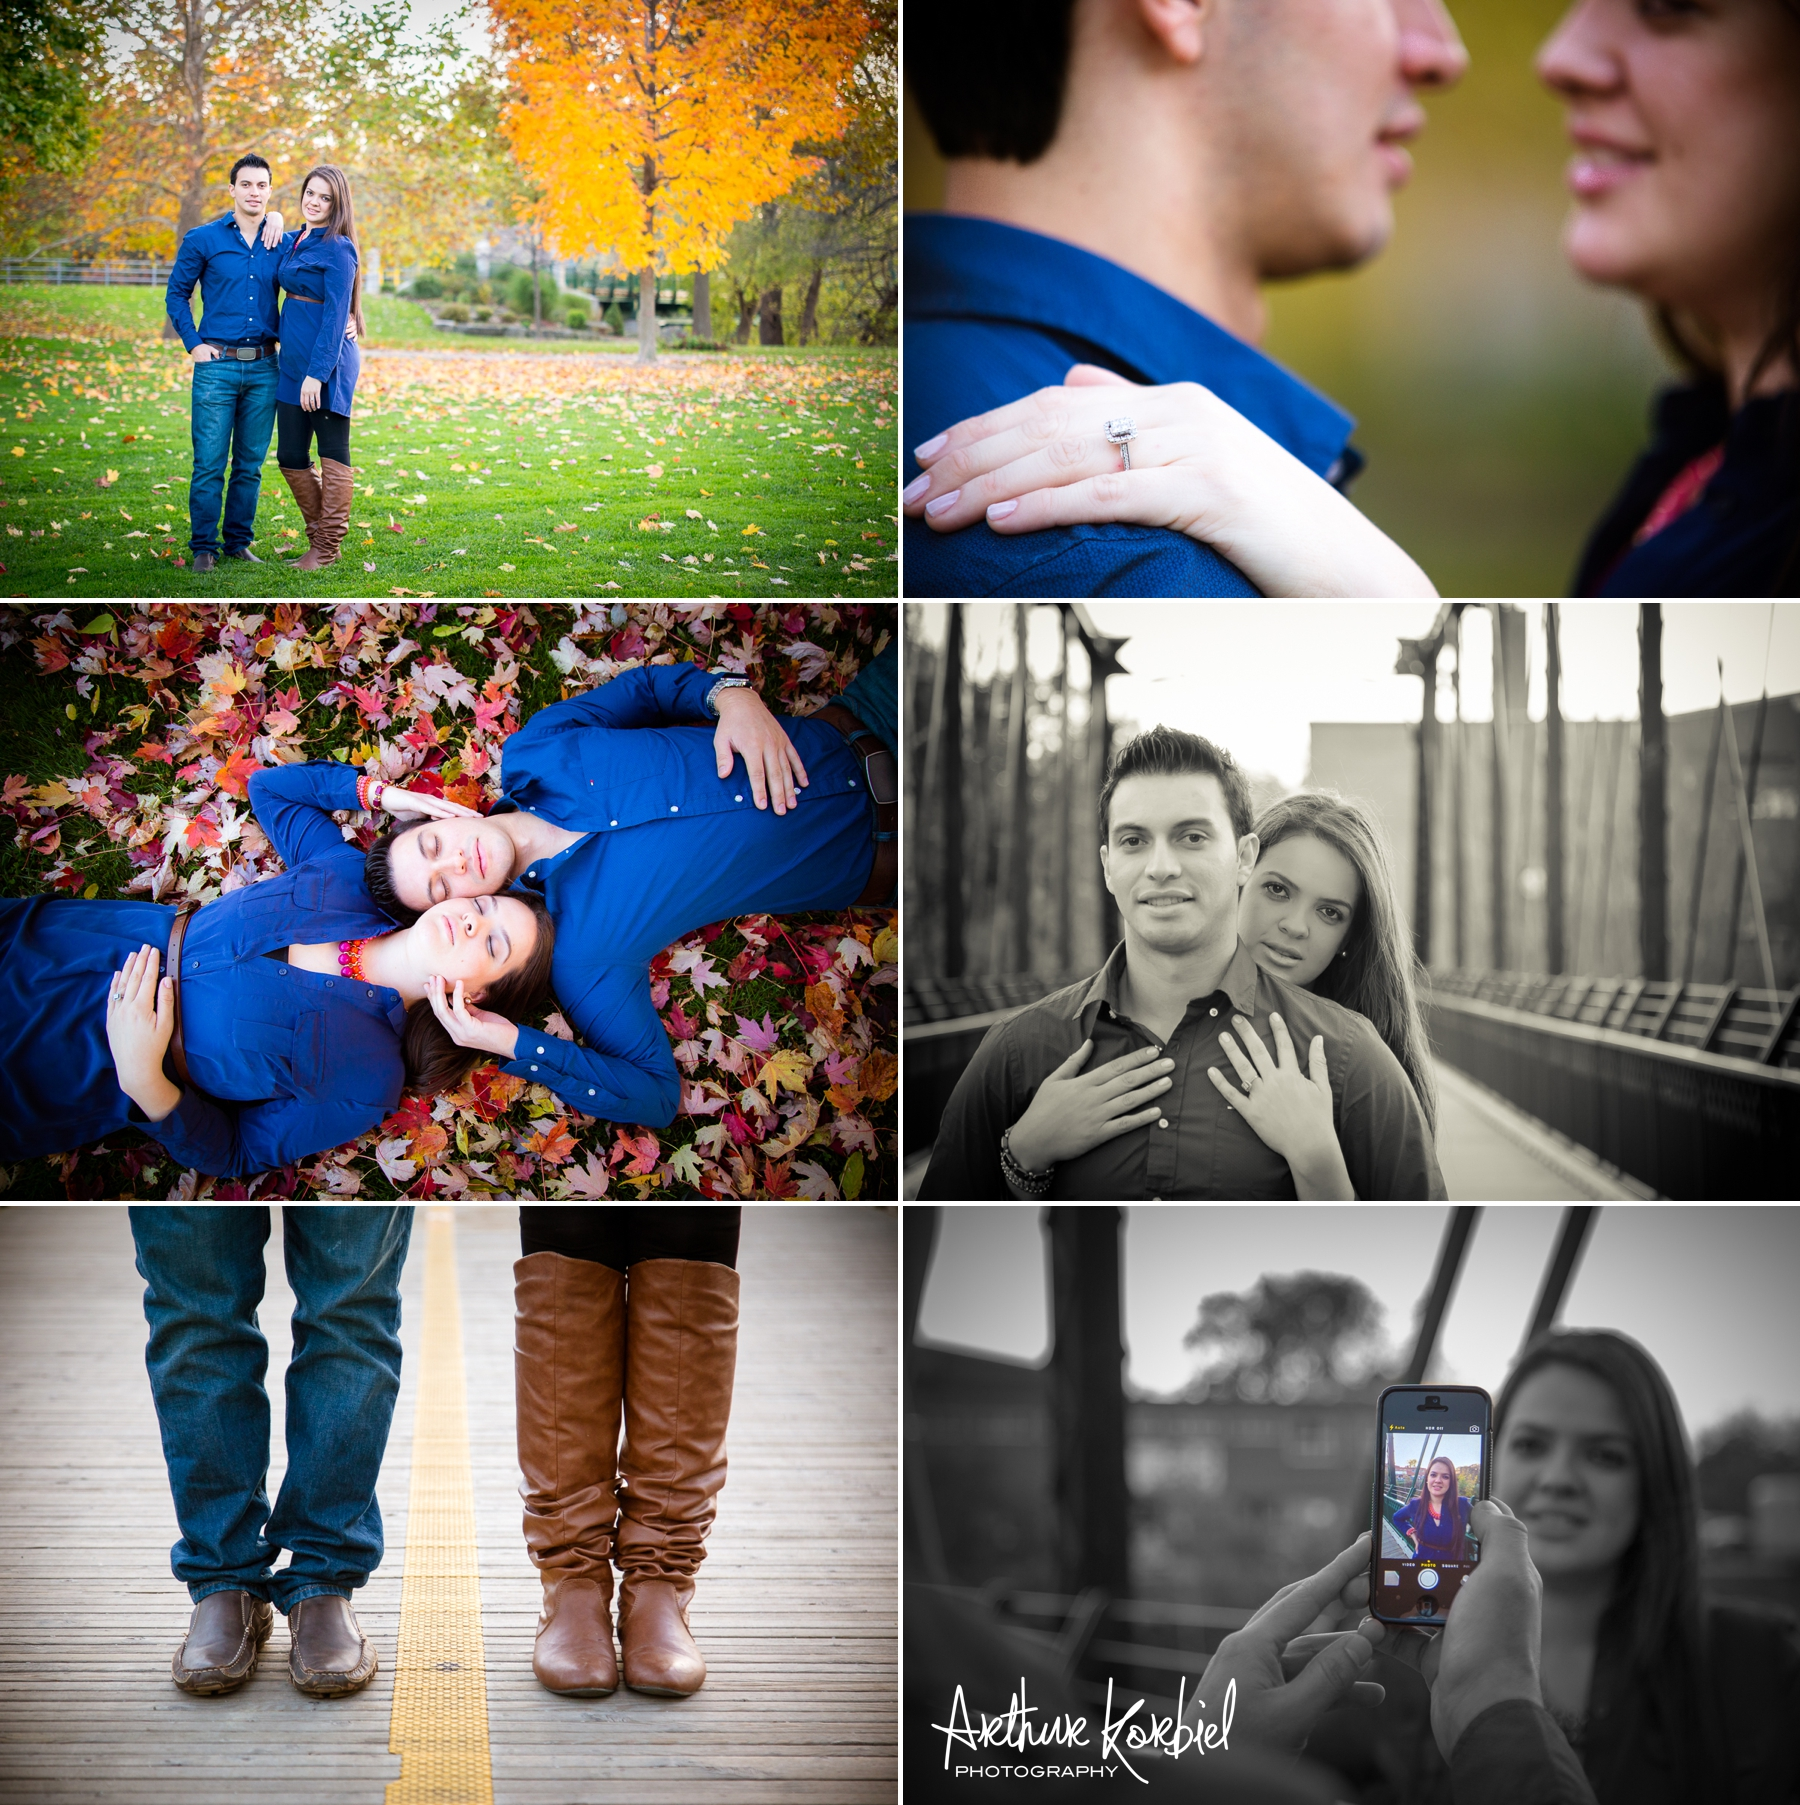 Arthur Korbiel Photography - London Engagement Photographer - Downtown London - Maria & Jose_005.jpg